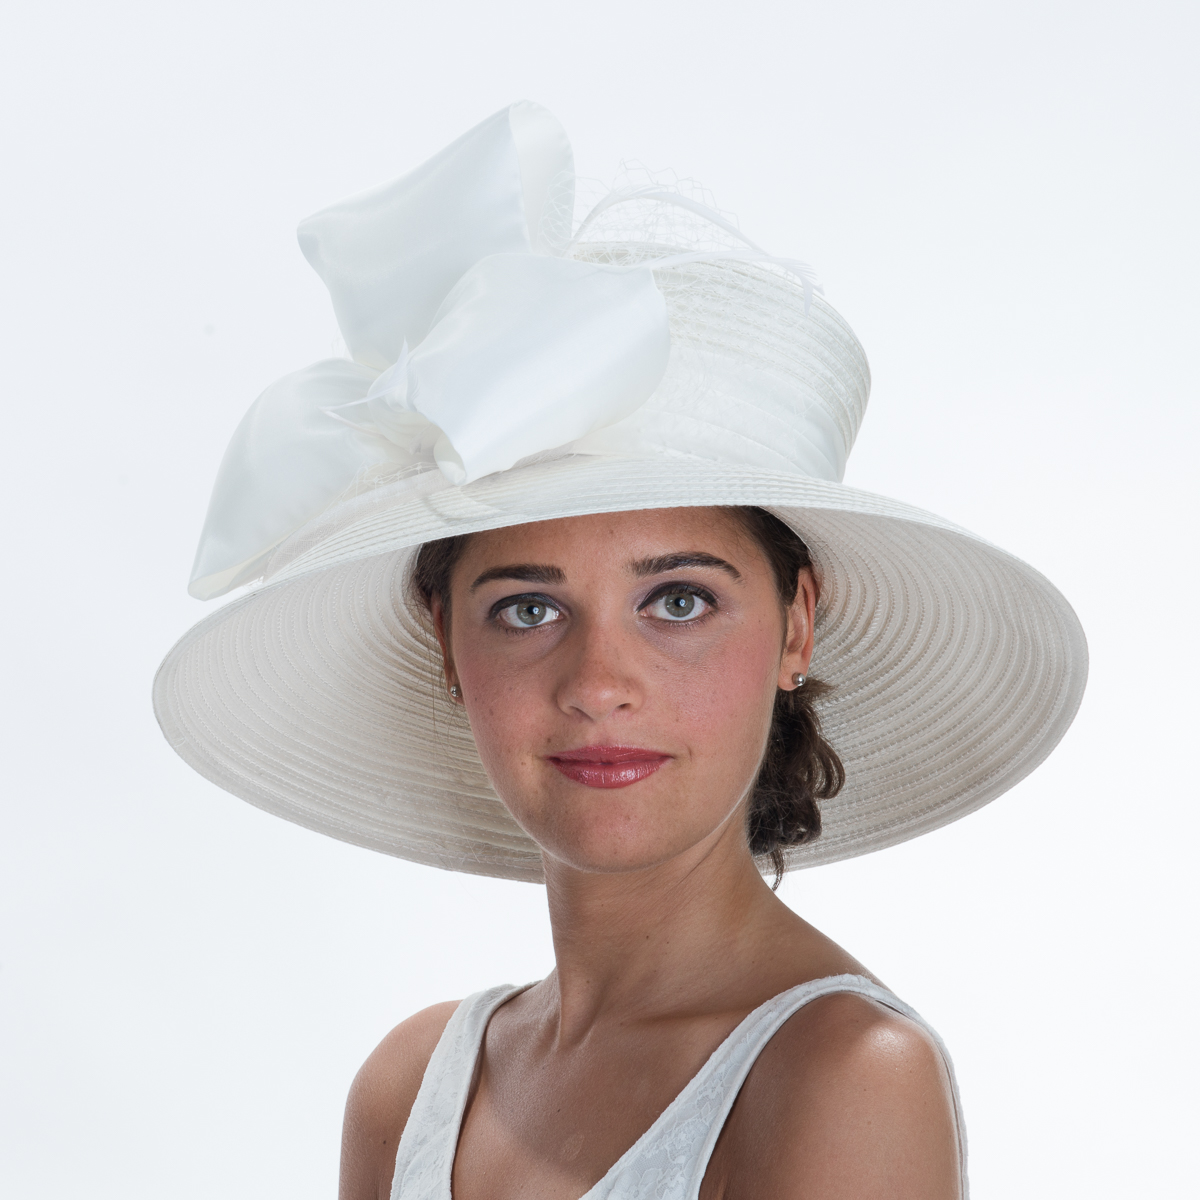 e473b7a50c96a Diamond White Wide Brimmed Bow With Veil Stain Ribbon Hats by Zoria ...